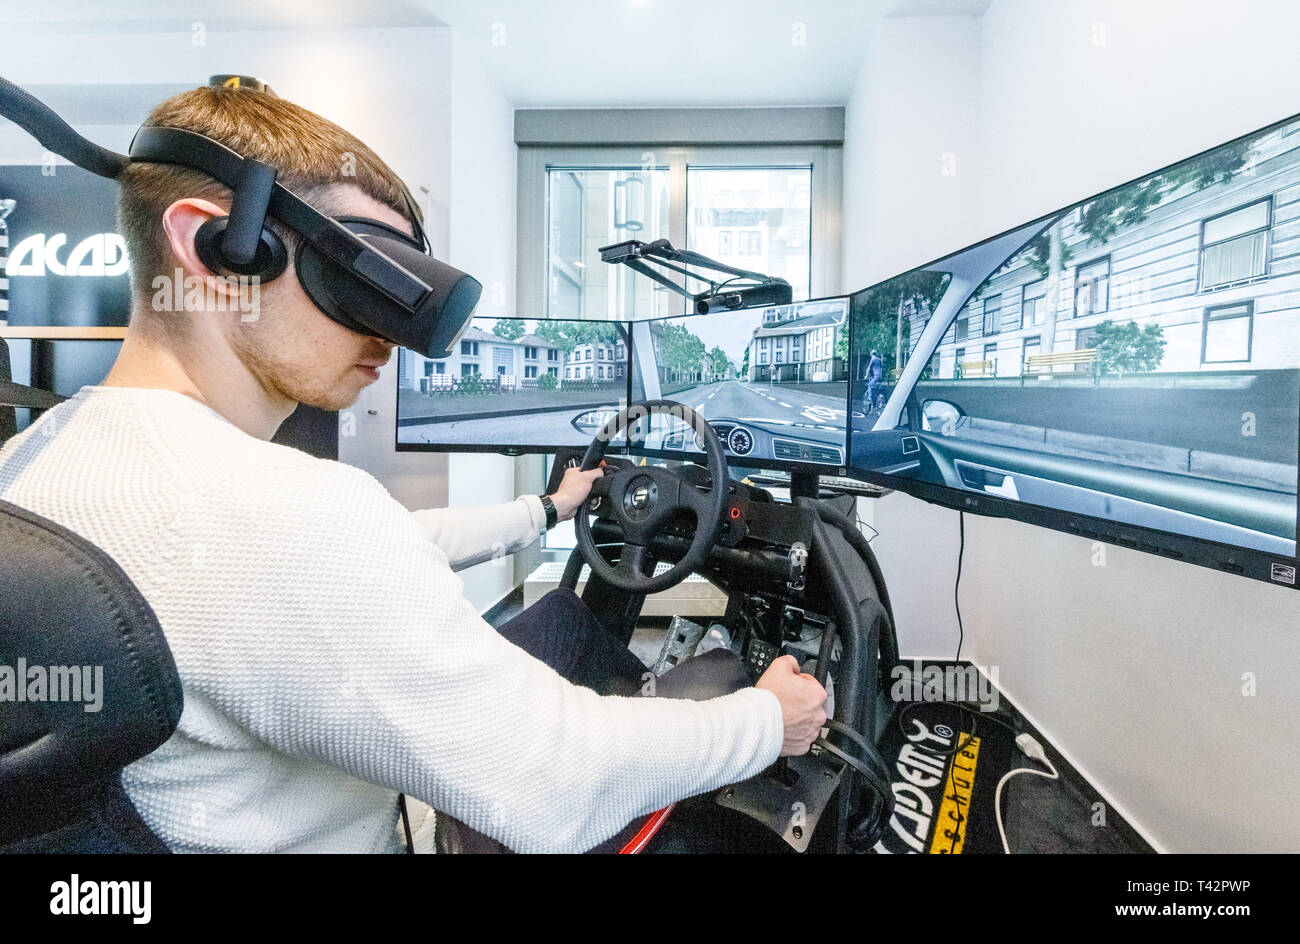 Hamburg, Germany  13th Apr, 2019  A young man sits with VR (Virtual